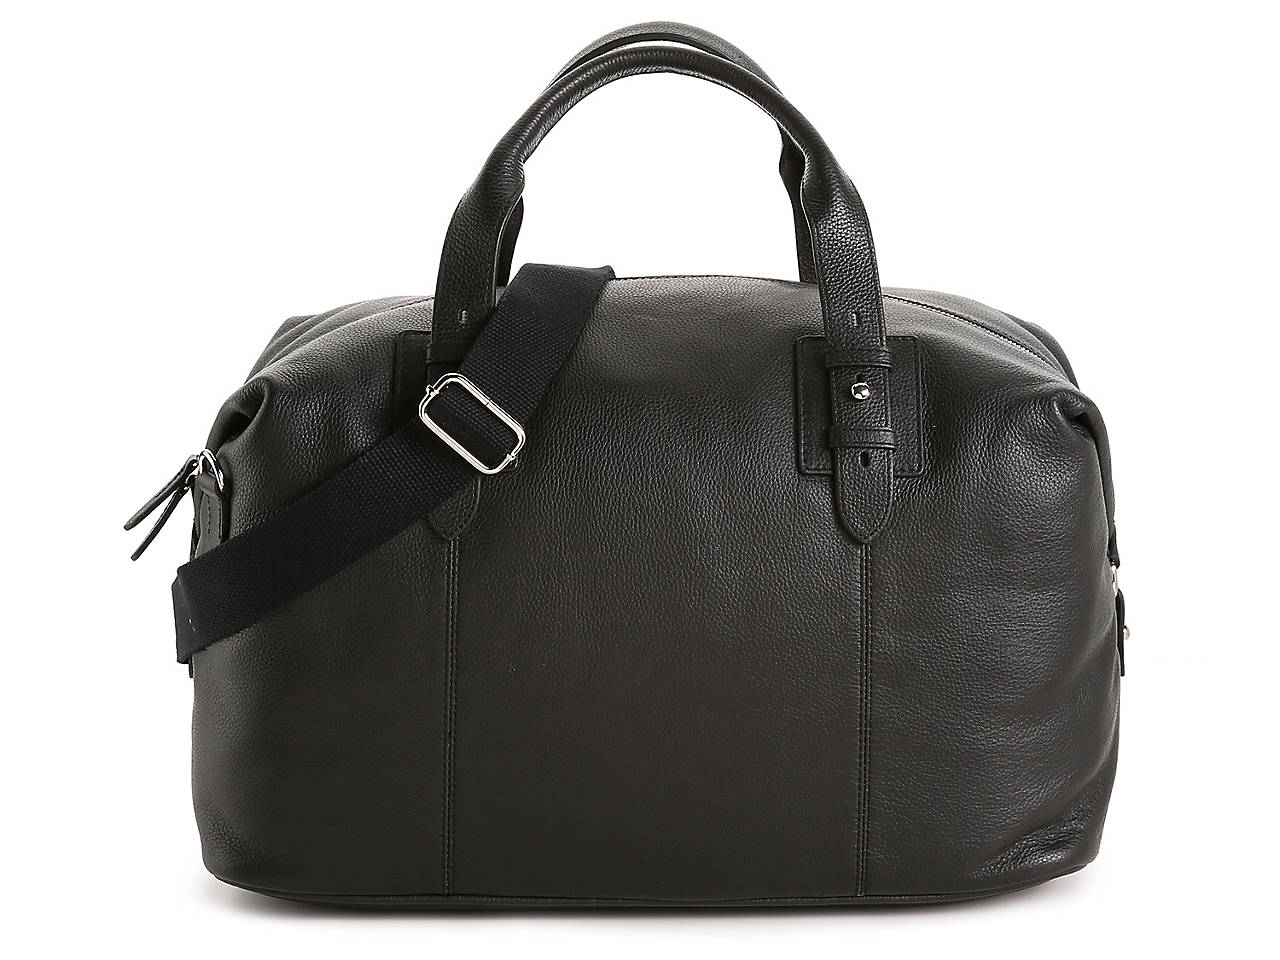 Cole Haan Leather Weekender Bag Men s Handbags   Accessories  7087585b83f7a